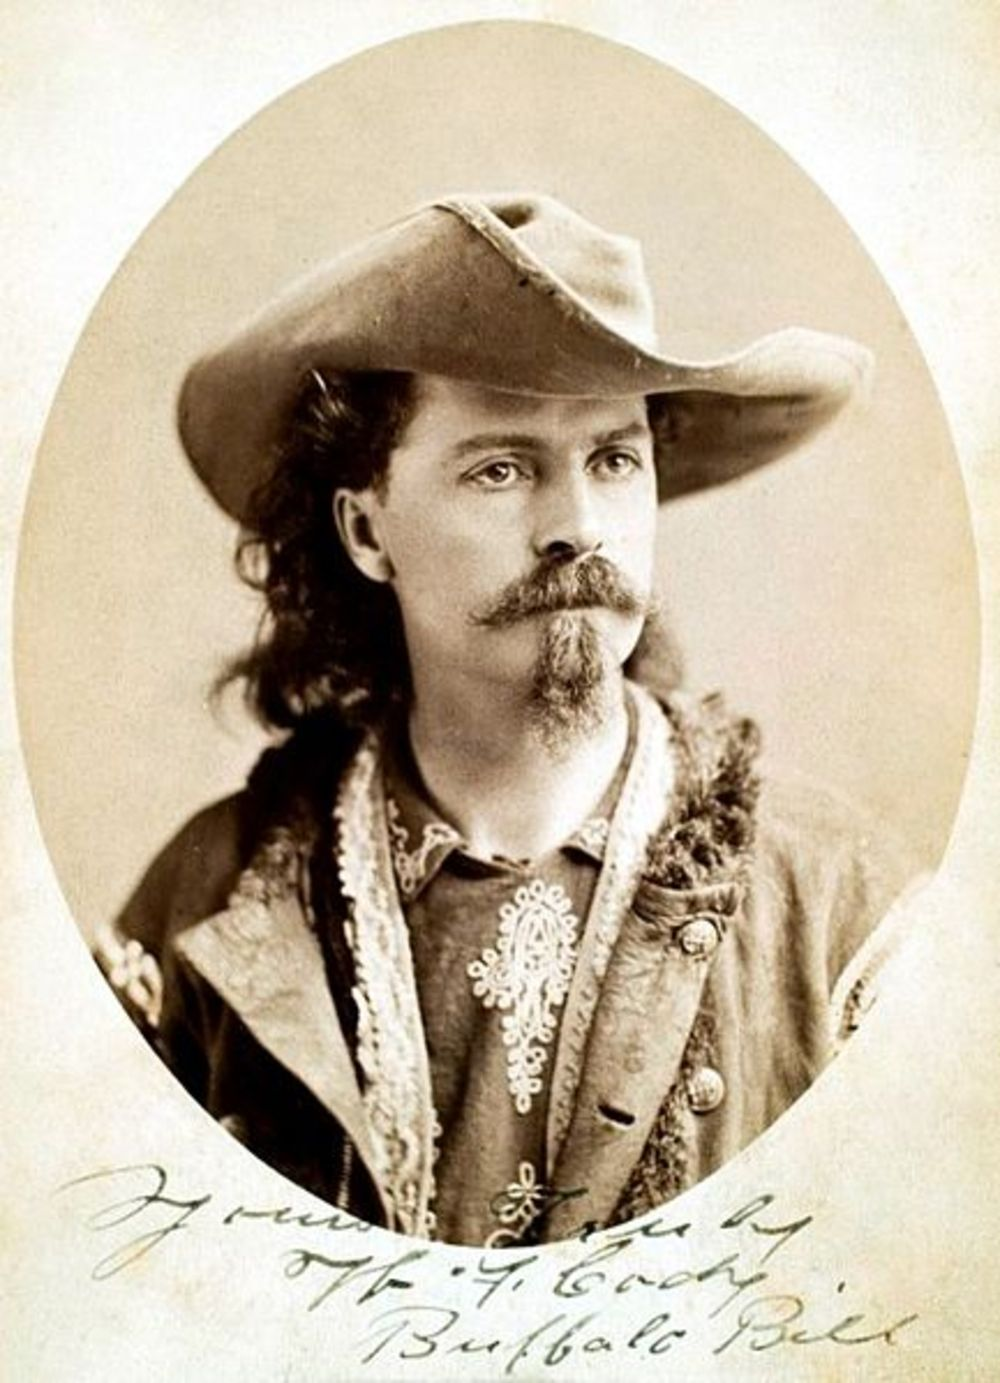 Mclaughlins >> The Unlikely Alliance Between Buffalo Bill and Sitting Bull - History in the Headlines